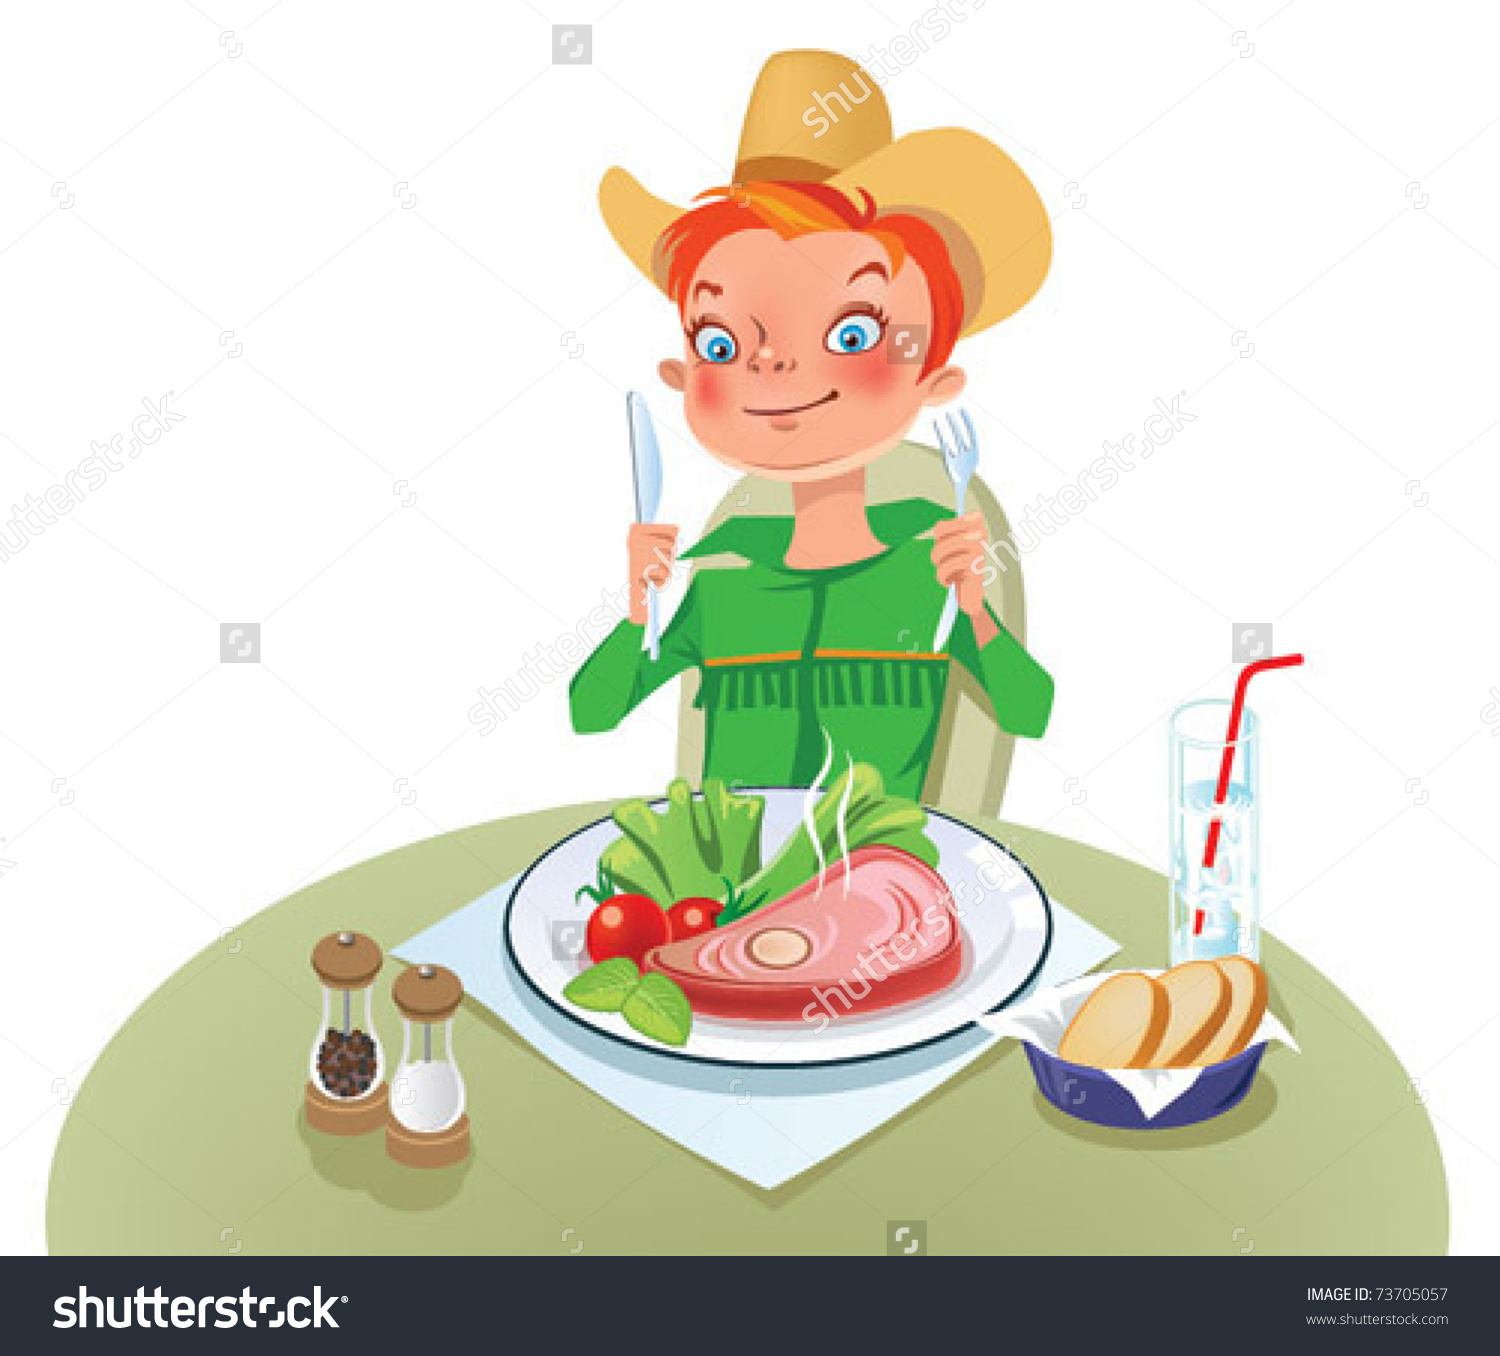 Child Eating Vegetables Stock Vectors & Vector Clip Art.